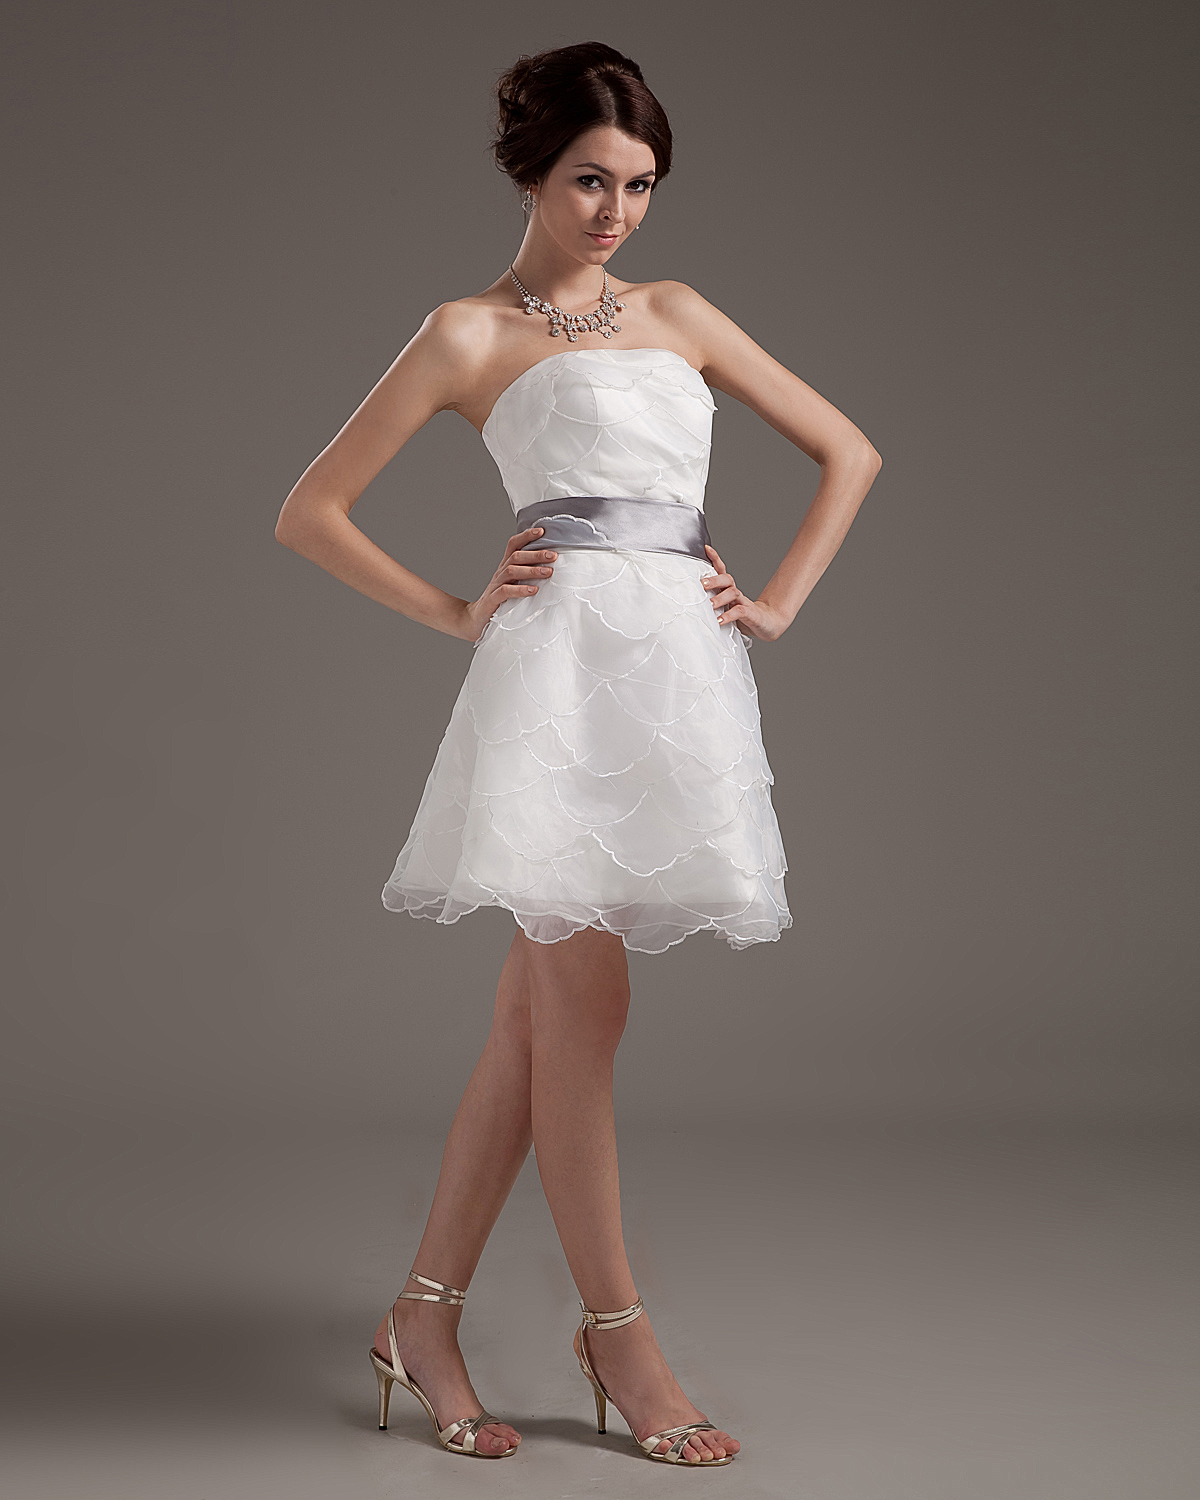 Yarn Layered Ruffle Strapless Short Bridal Gown Wedding Dress